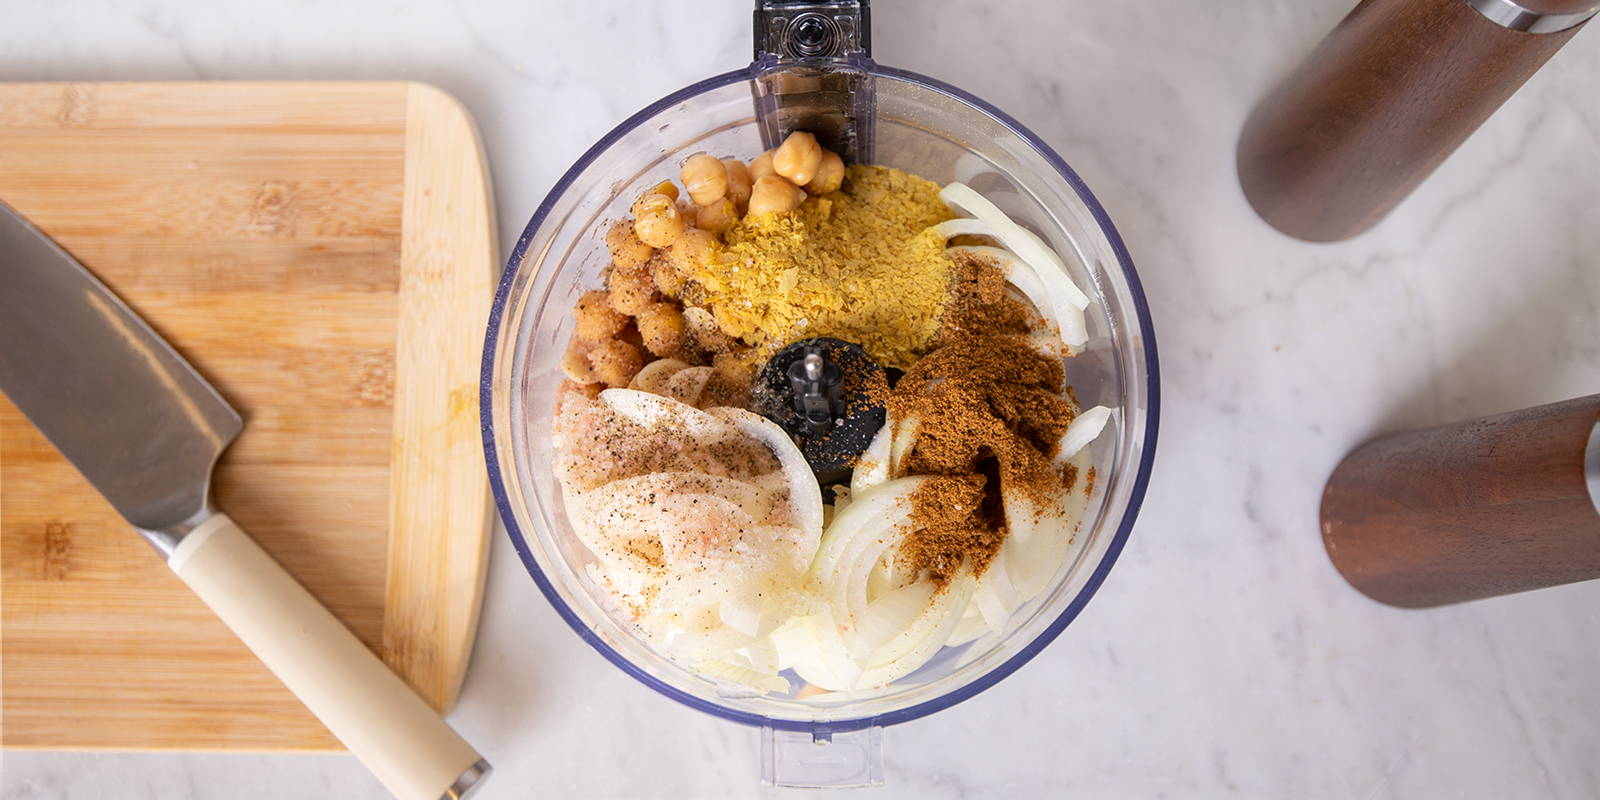 Making hummus at home with a lot of flavor from spices like coriander and cumin.